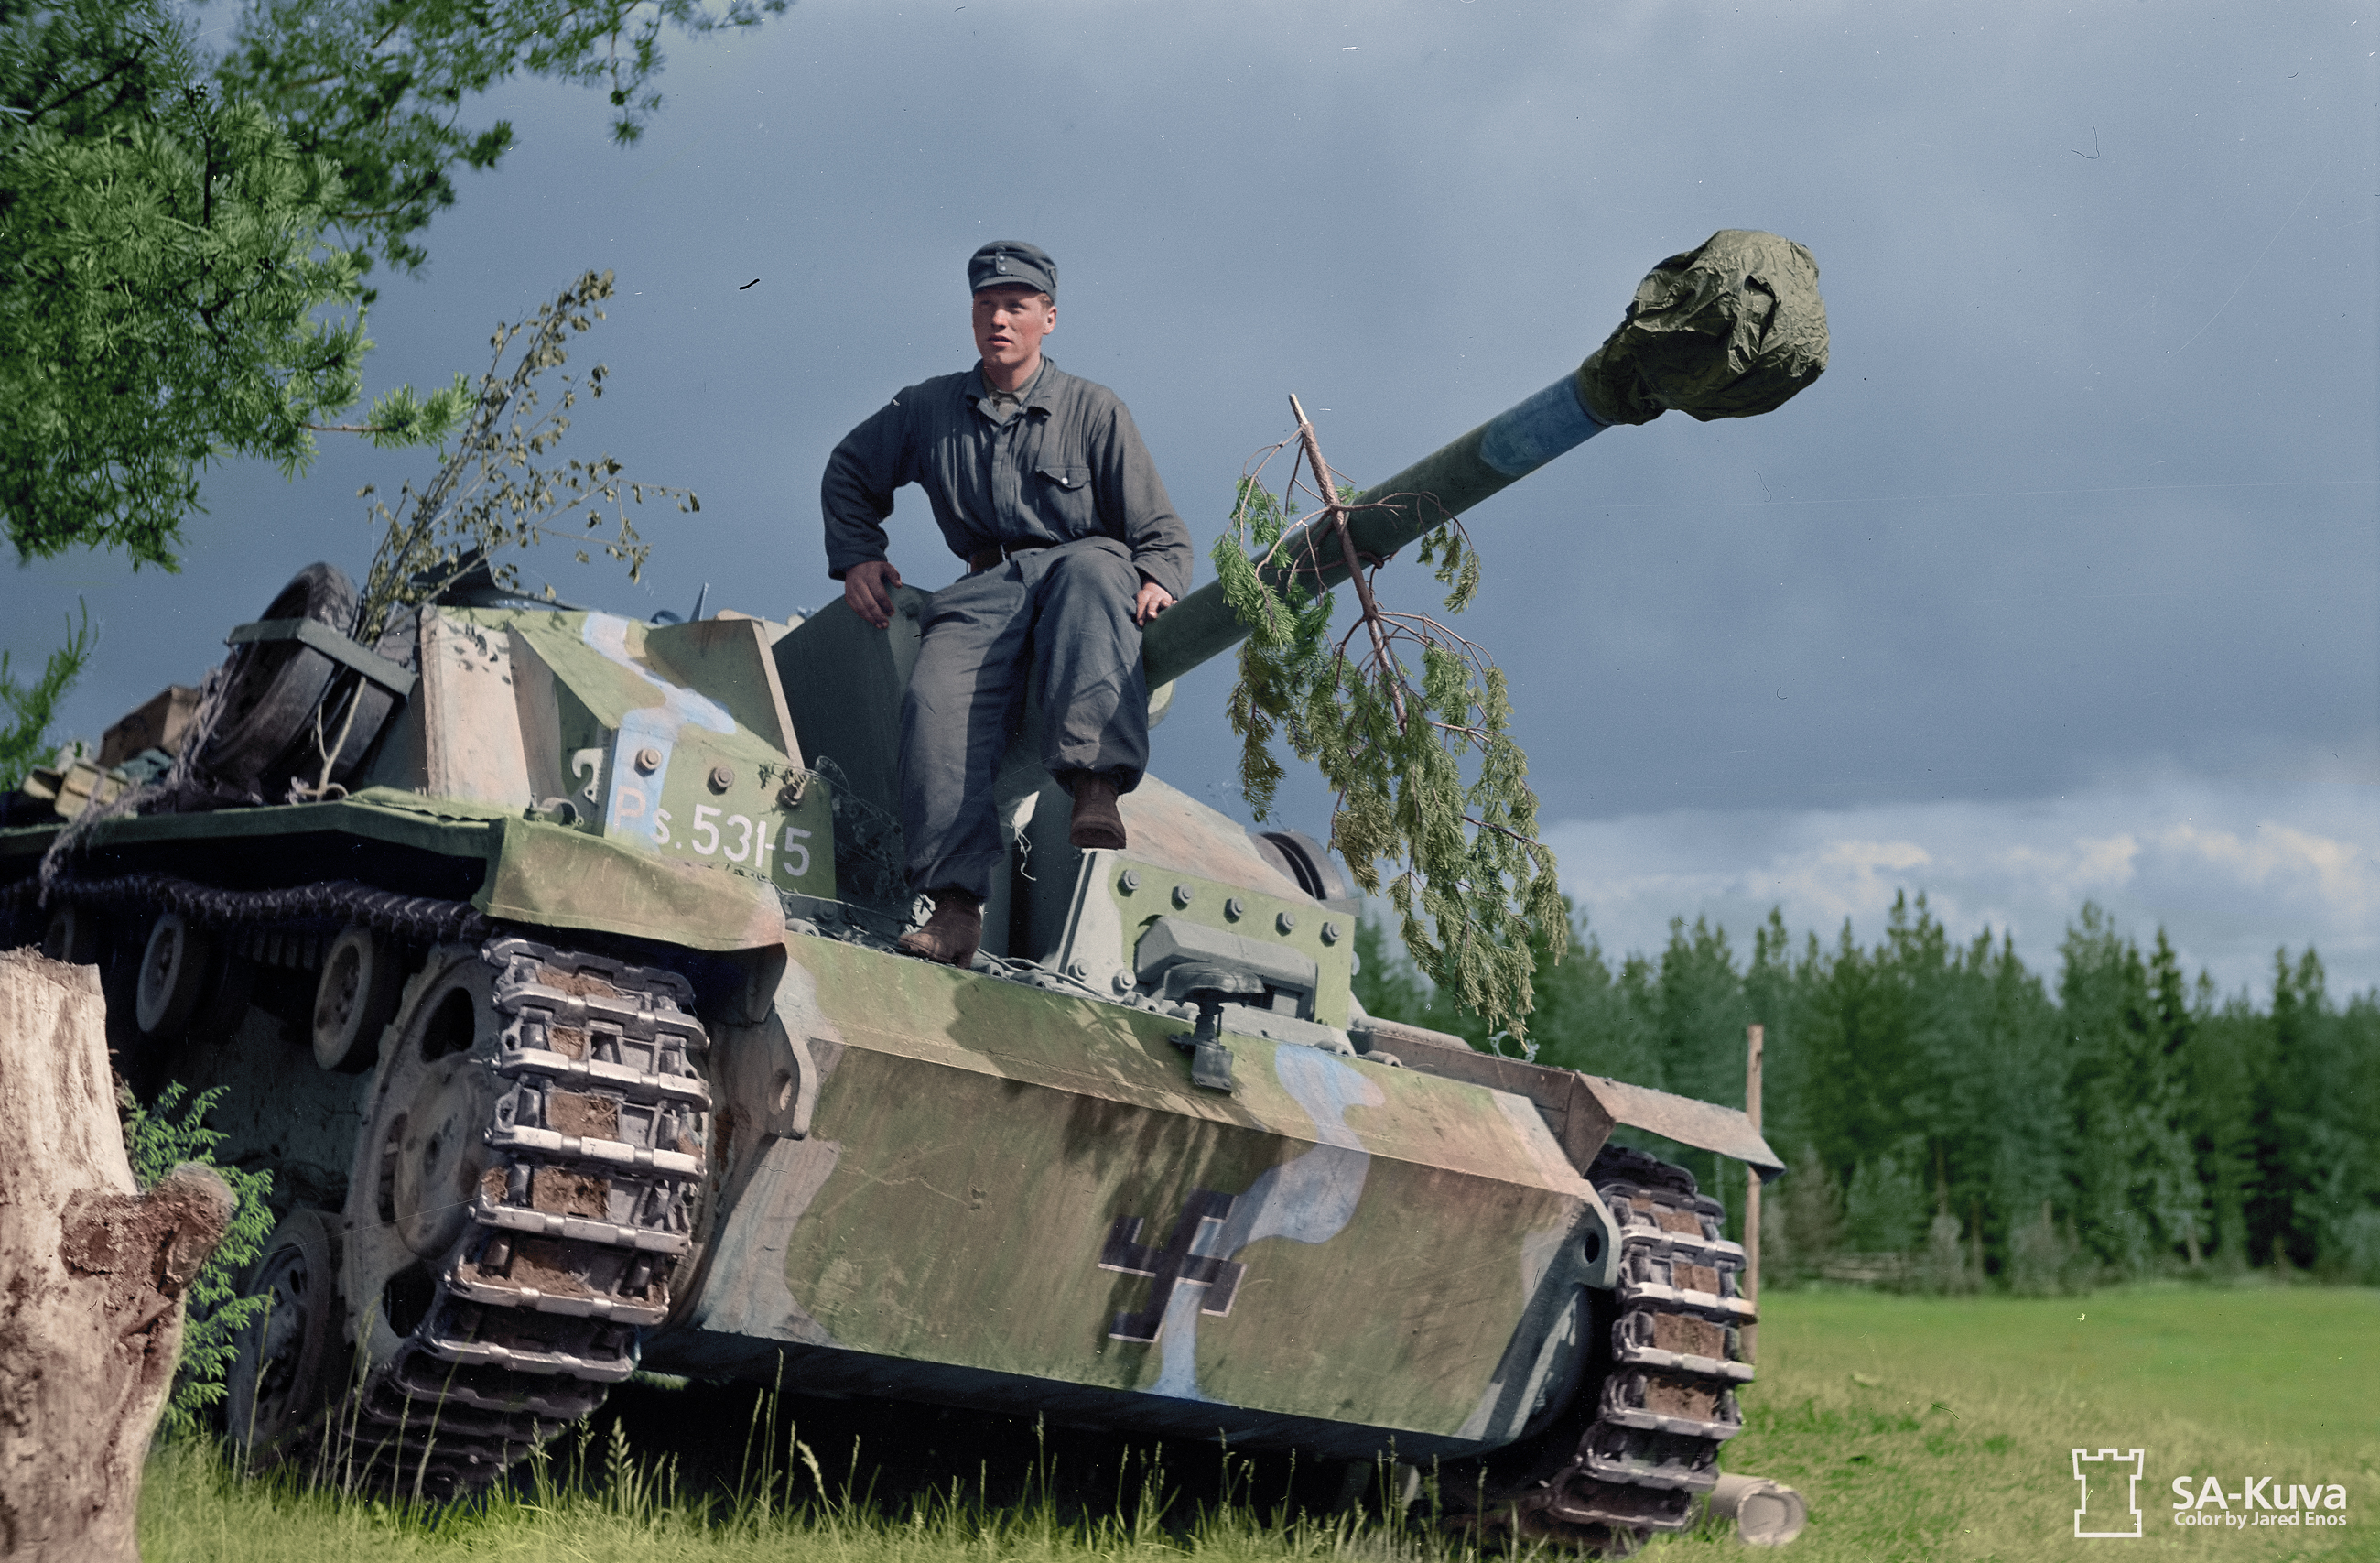 Our Soviet tank soldier plays in a helmet and a padded jacket, but the whole lie of this to 93